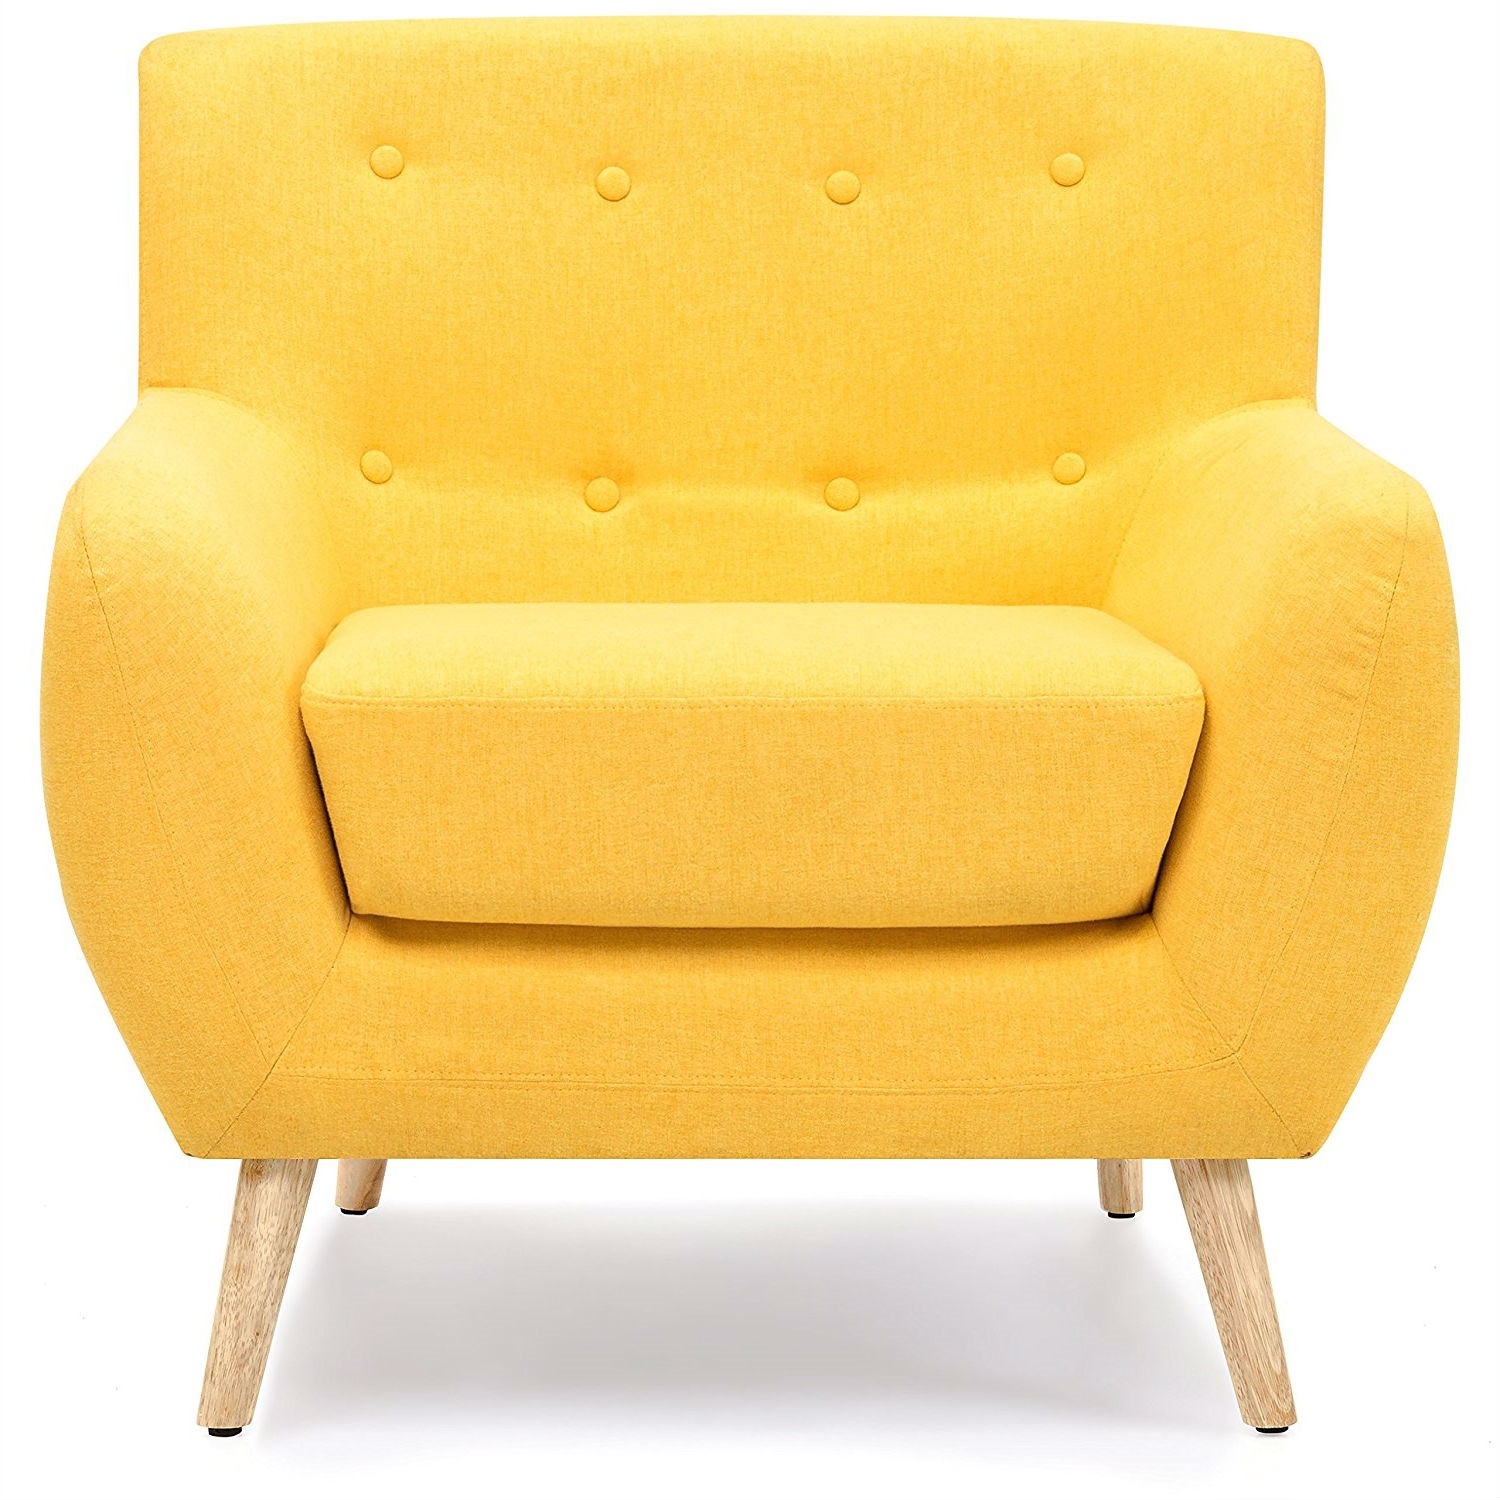 Modern Yellow Linen Upholstered Armchair With Mid Century Style Wooden Legs